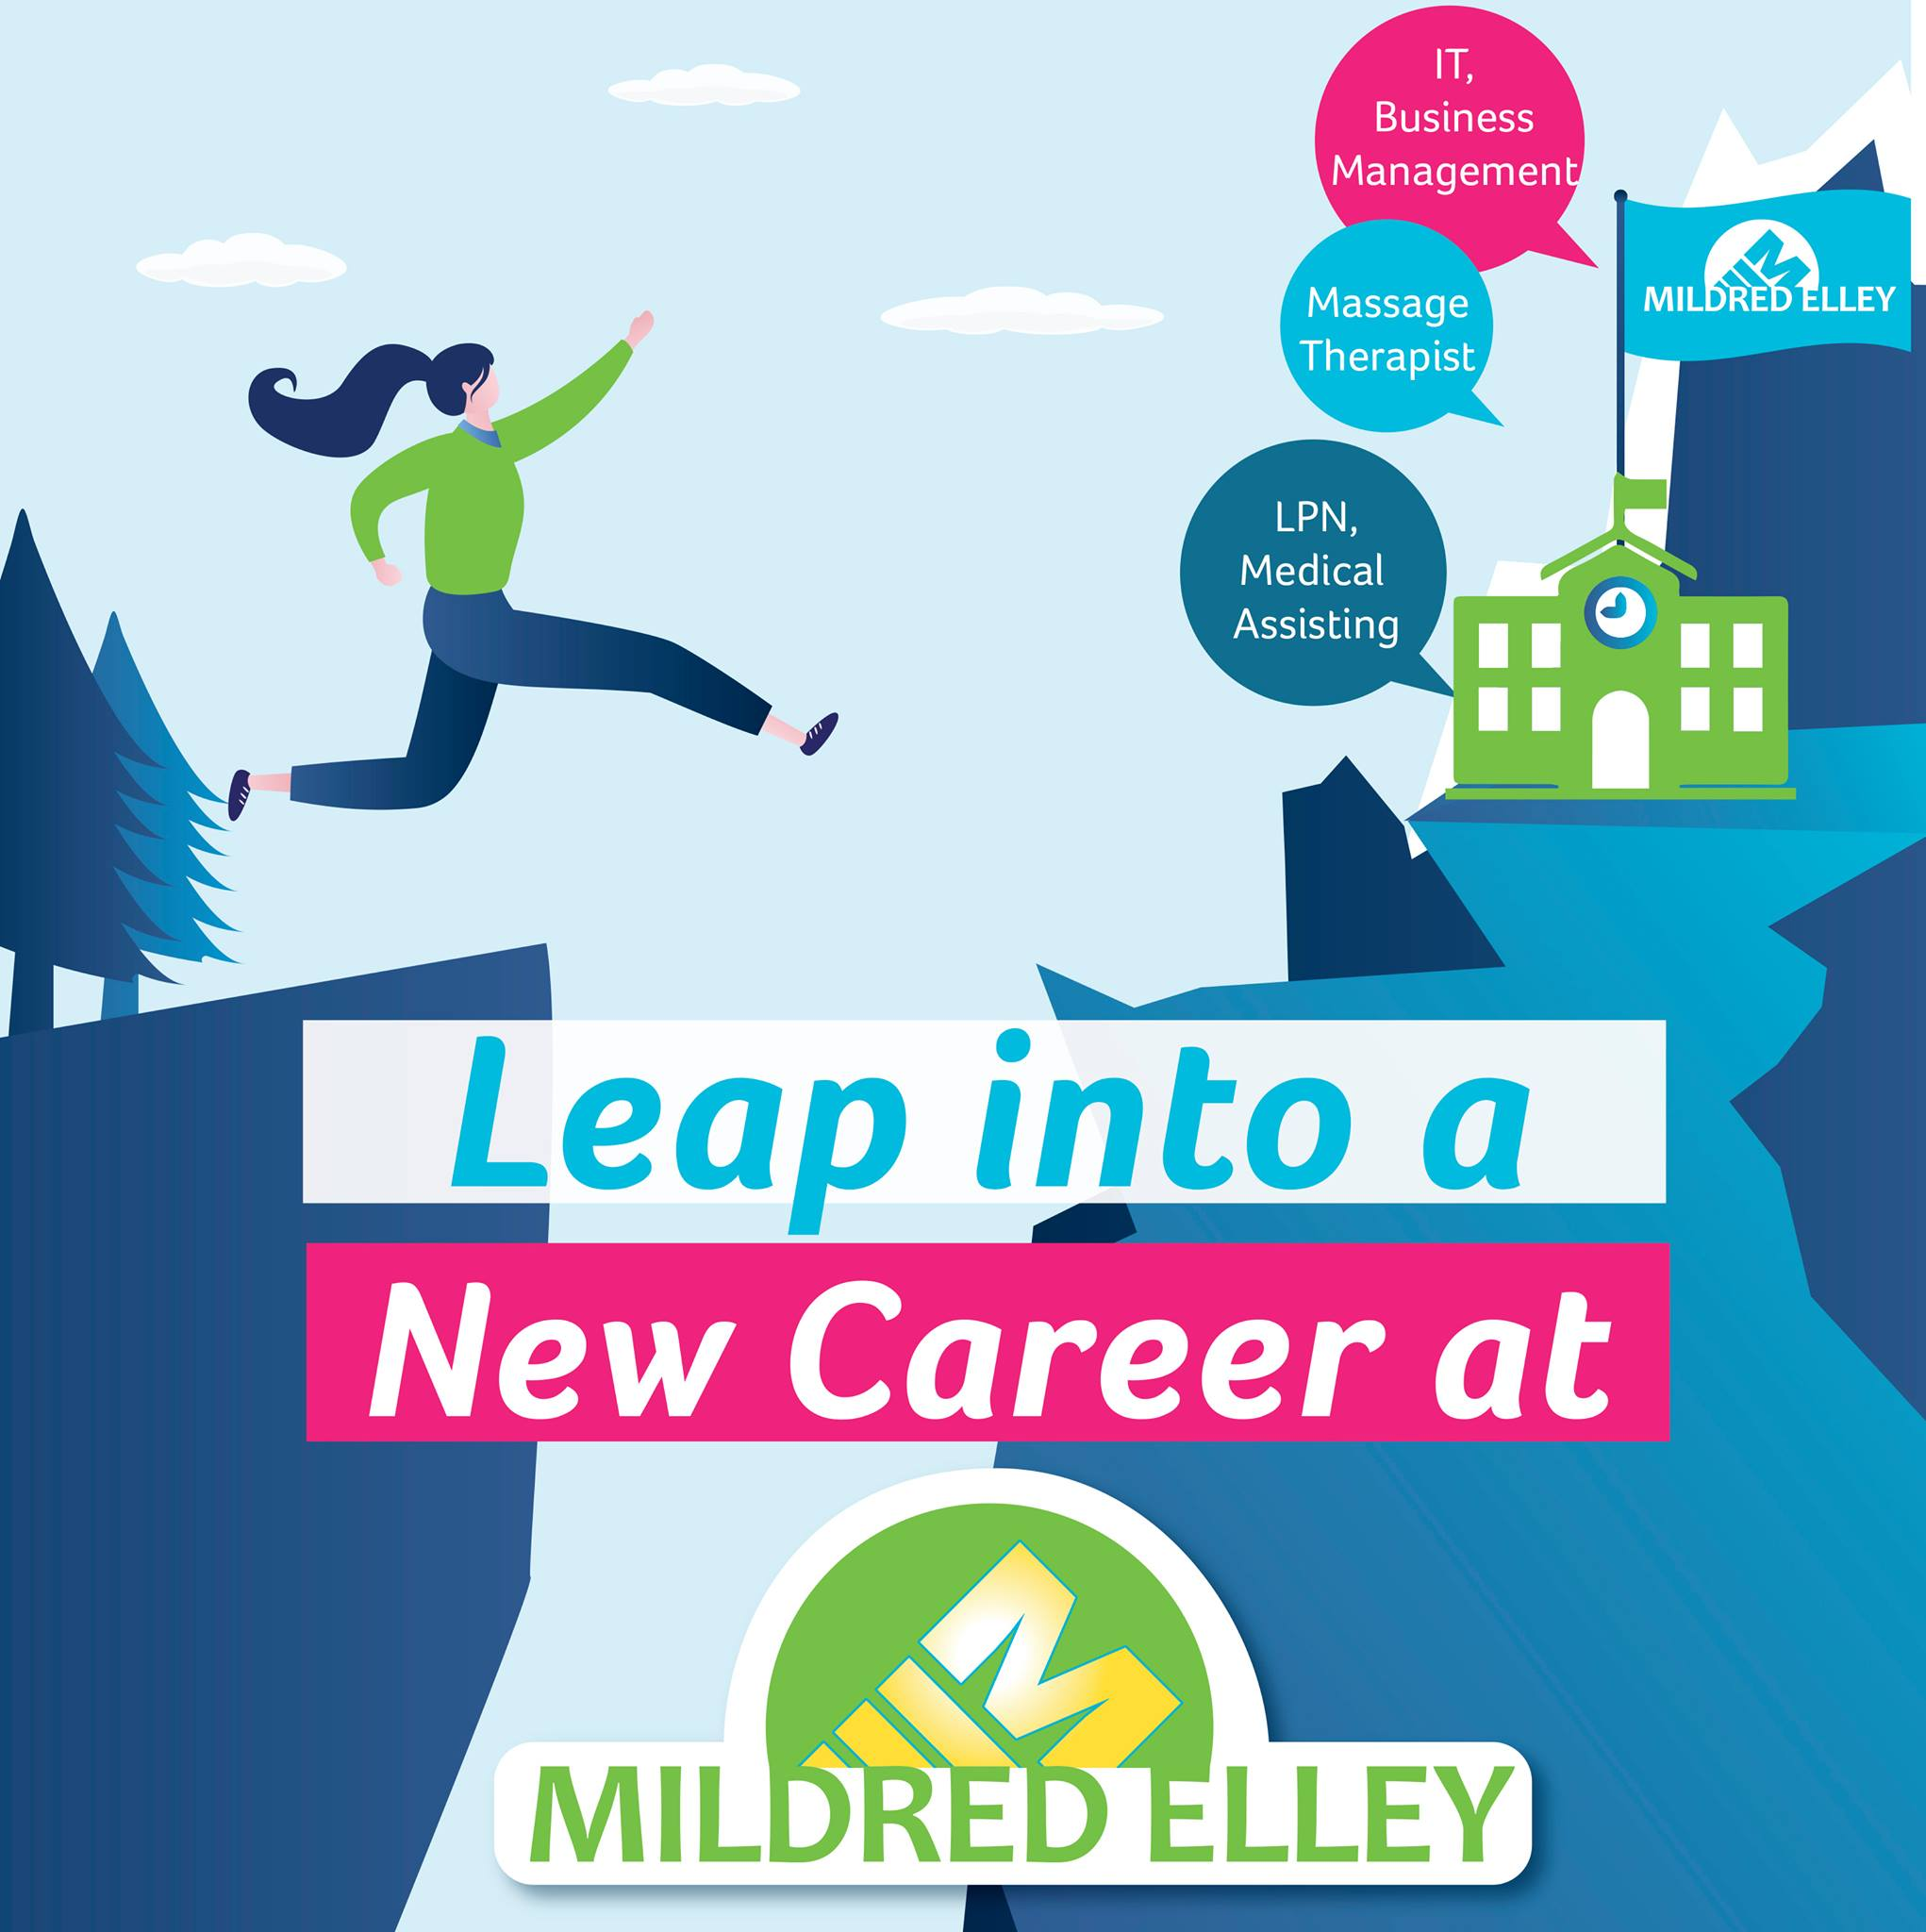 Leap into a New Career at Mildred Elley-infographic-plaza